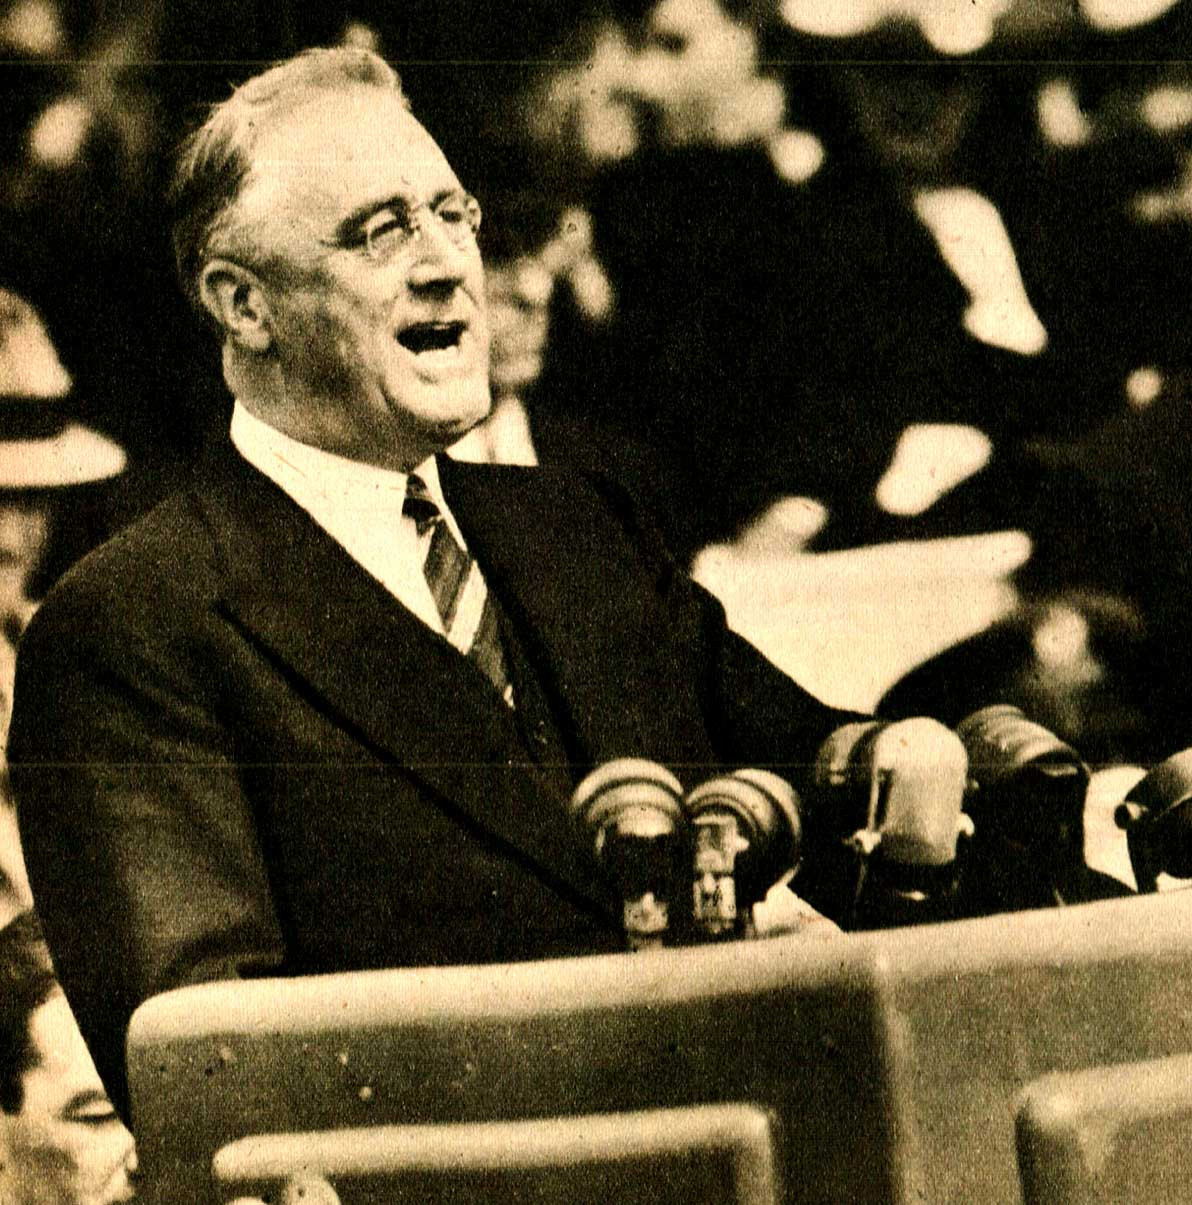 Preparing America for World War II: Franklin Roosevelt, Isolationism, and America First